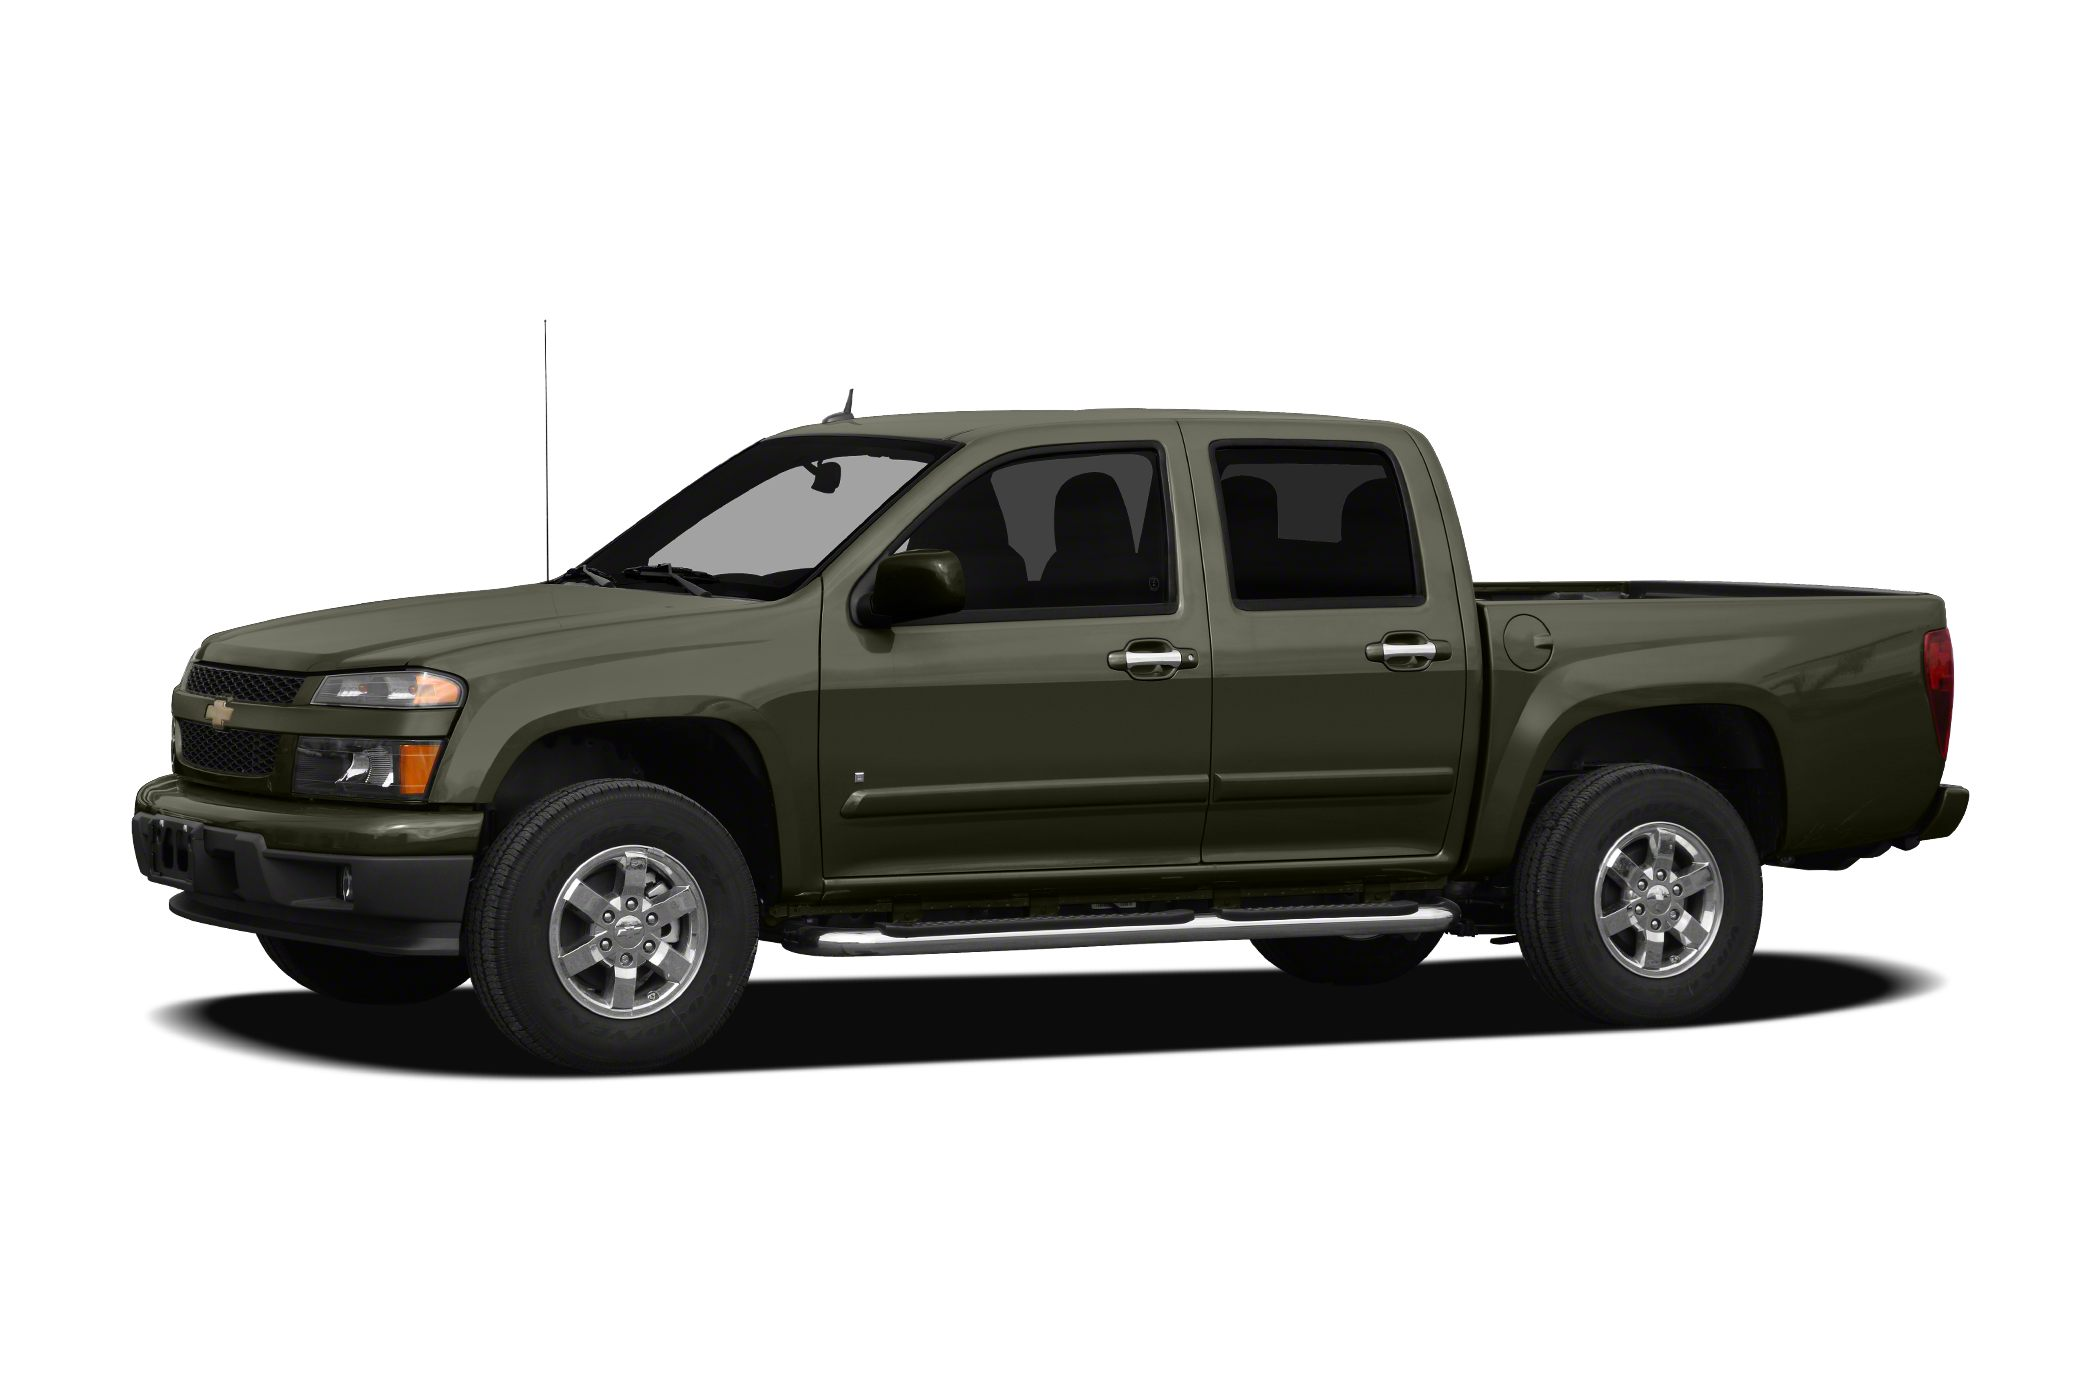 2011 Chevrolet Colorado 1LT Recent Arrival 2011 Chevrolet Colorado 1LT RWD 4-Speed Automatic with